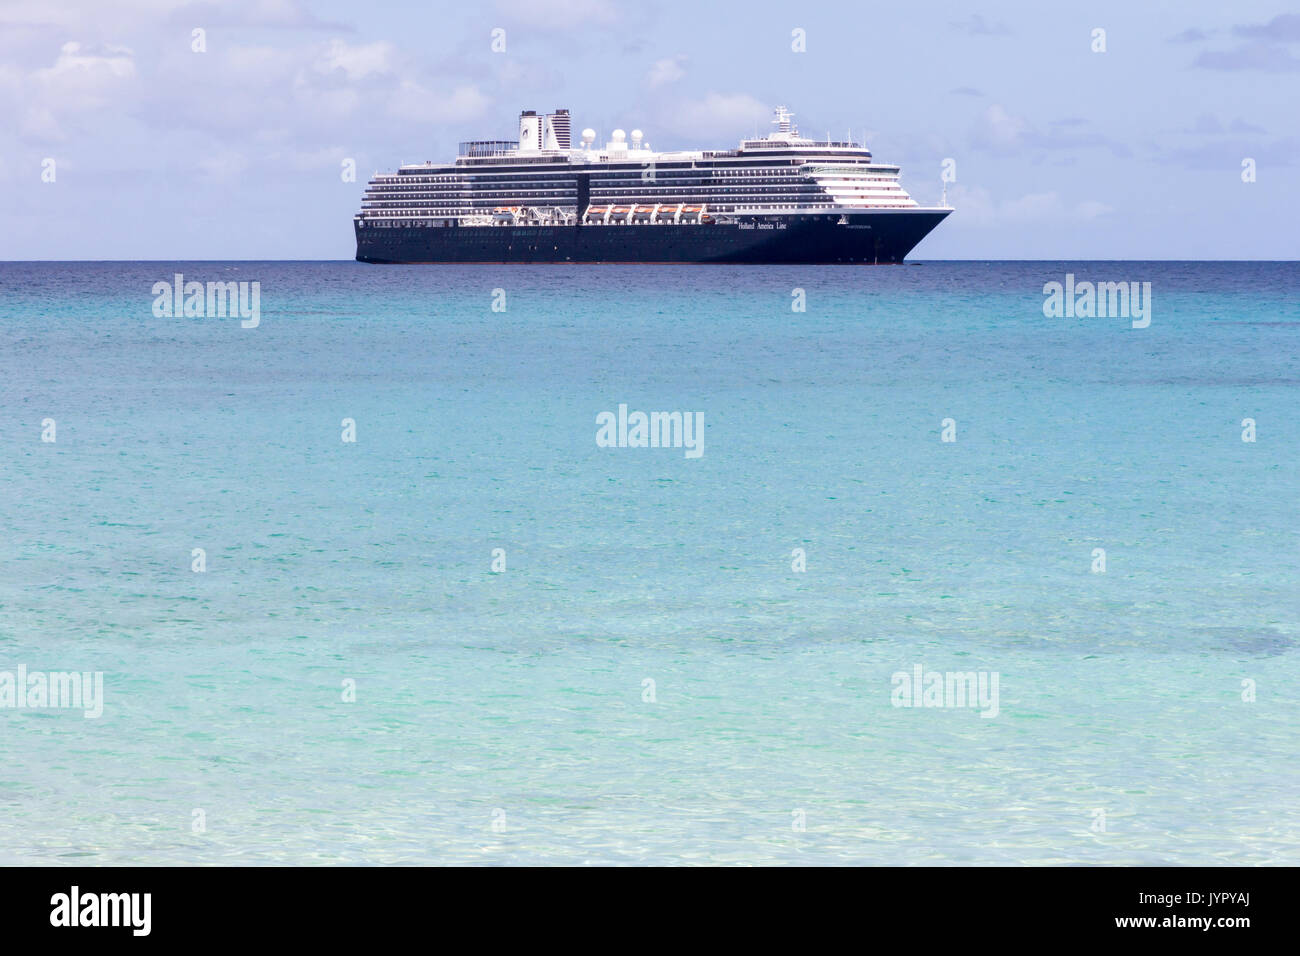 the-holland-america-line-cruise-ship-oos